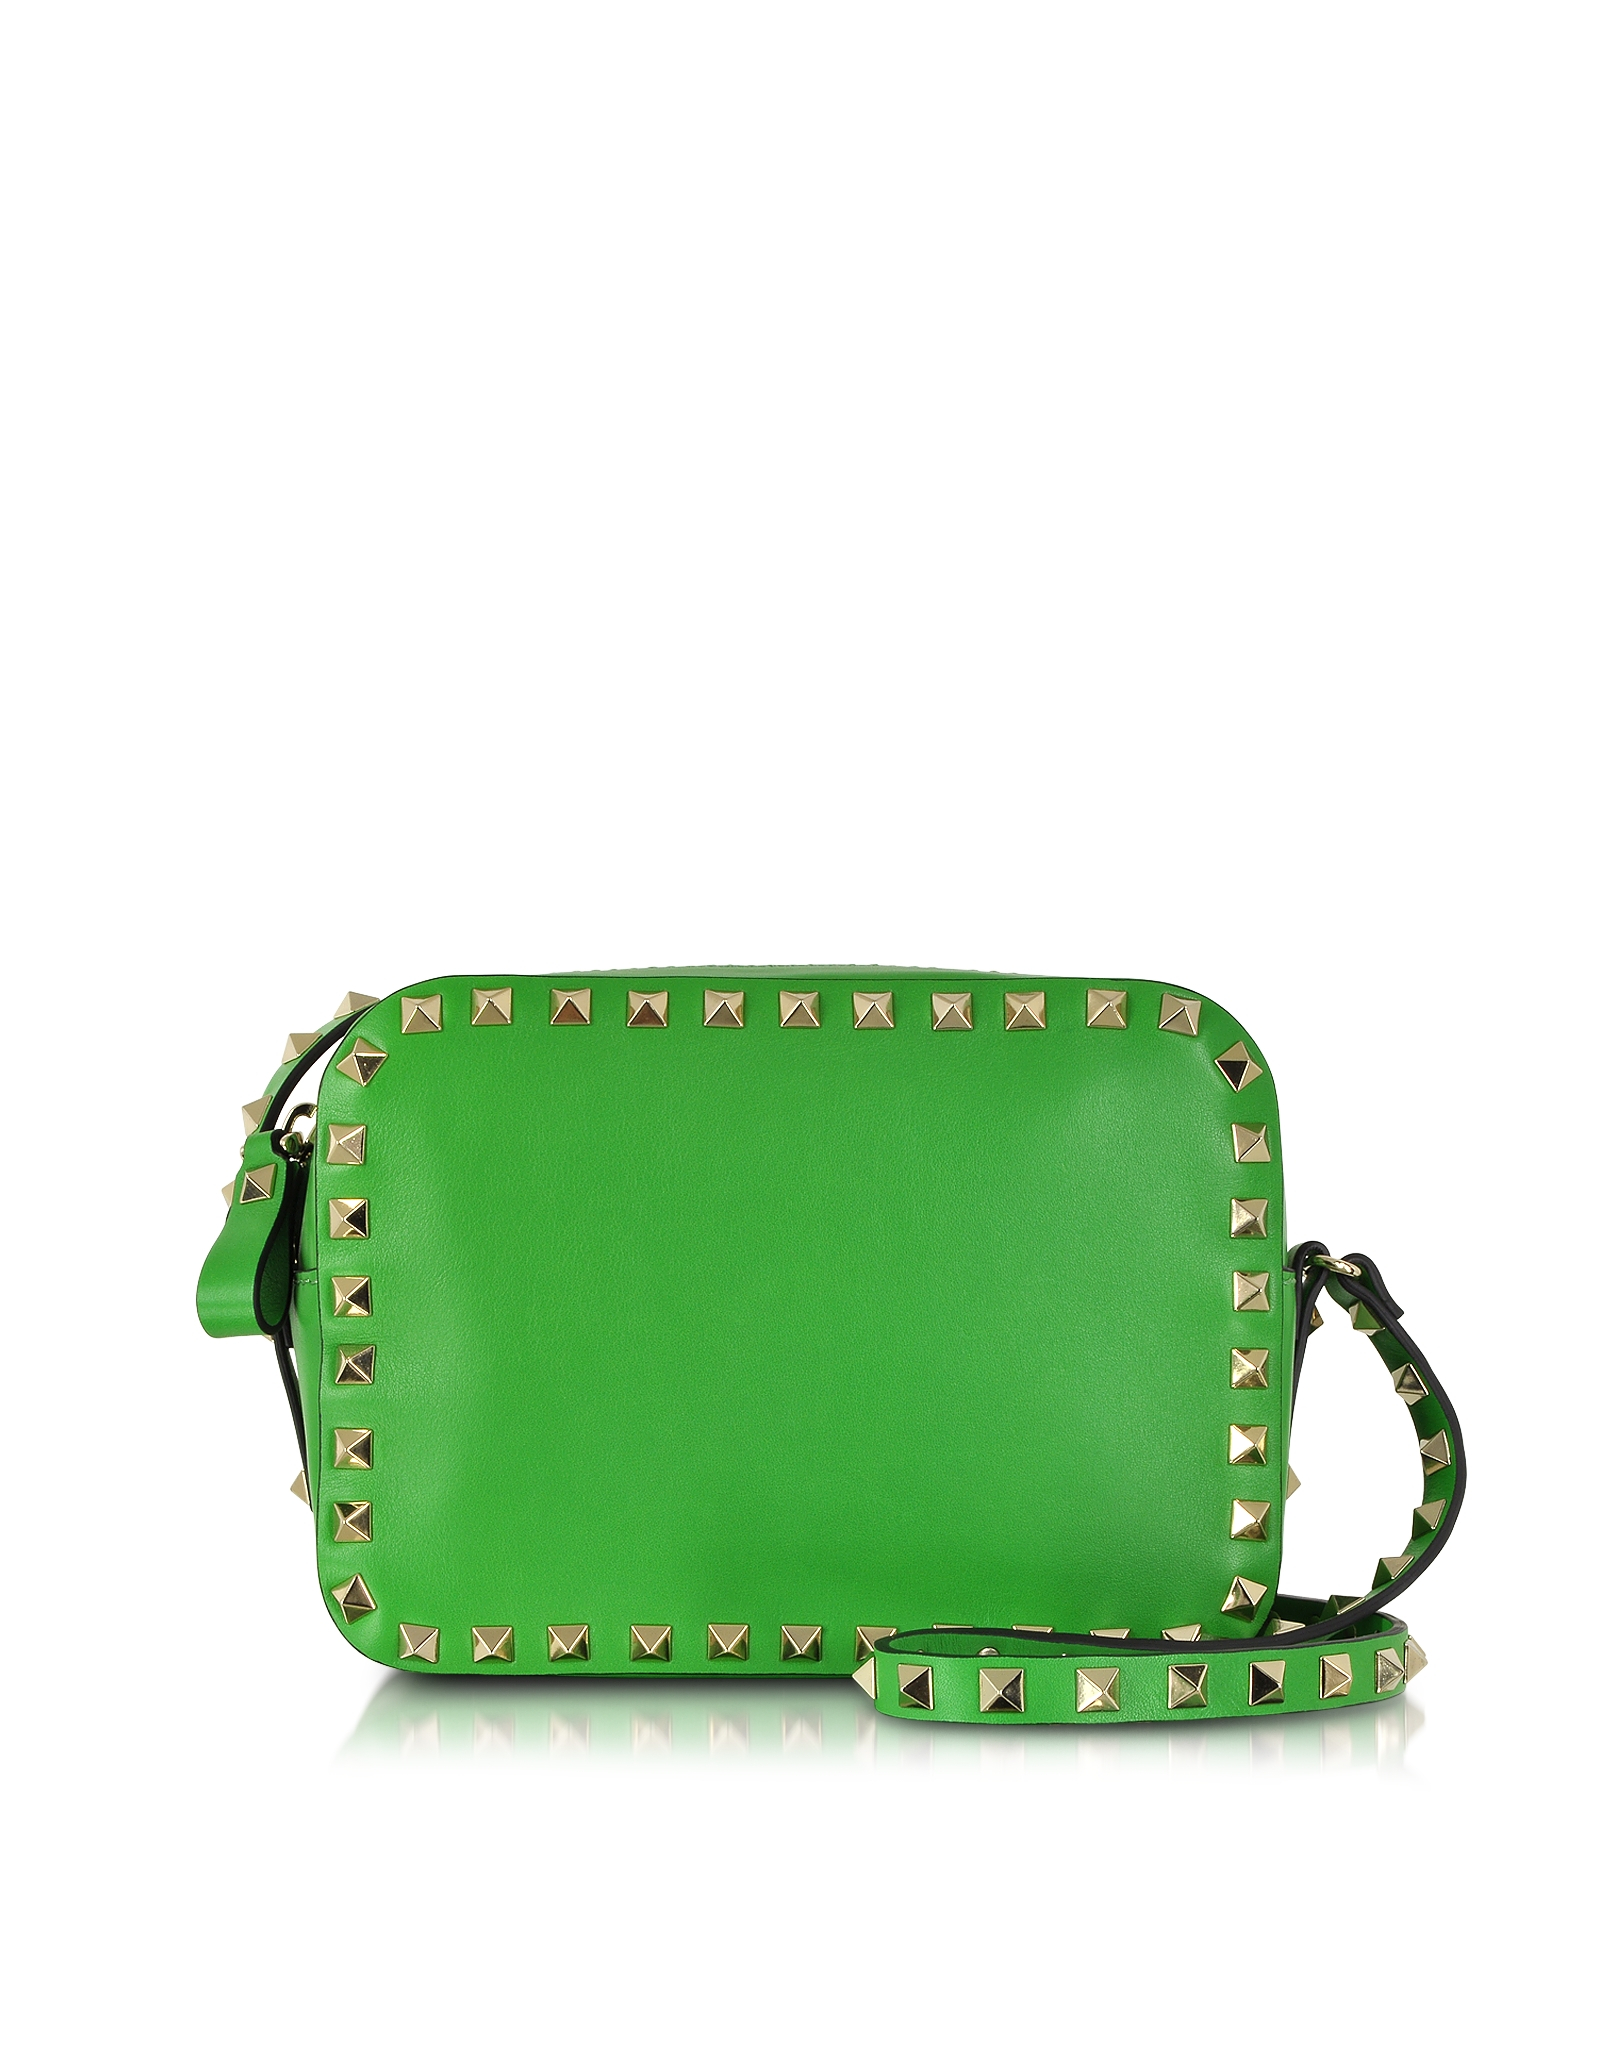 lyst valentino rockstud green leather crossbody bag in green. Black Bedroom Furniture Sets. Home Design Ideas